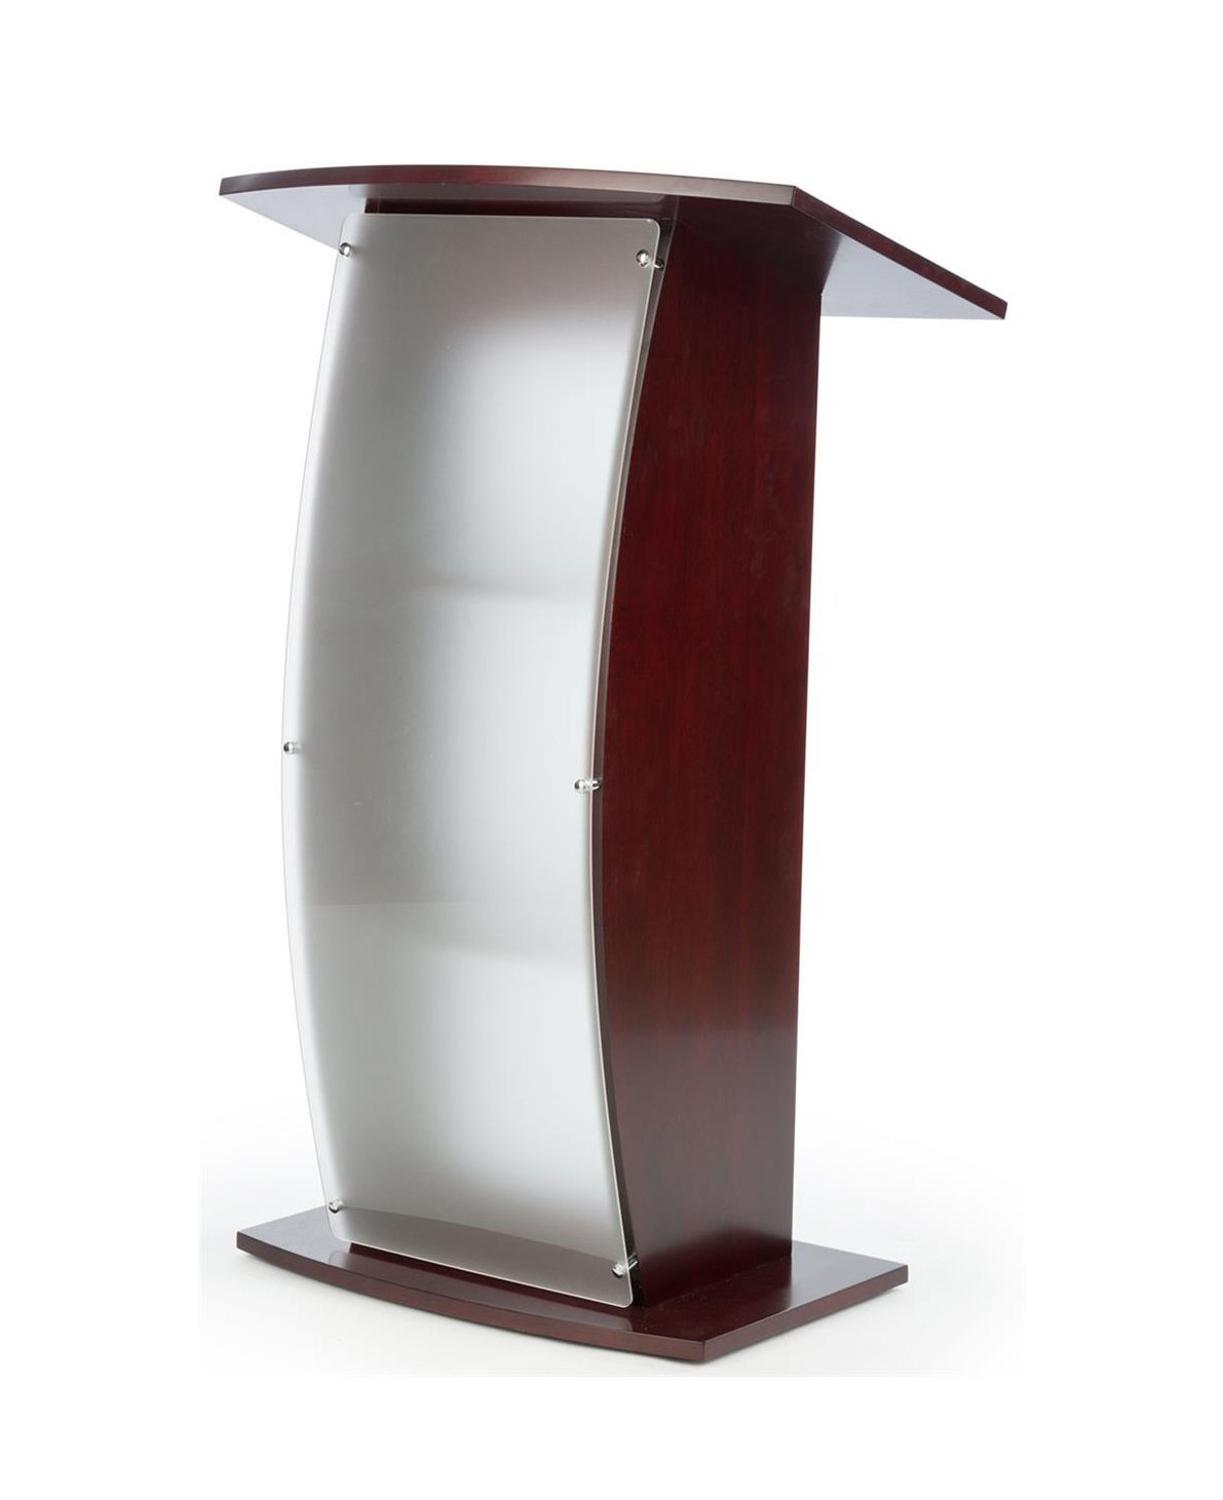 Fixture Displays 44.25 Tall Podium for Floor, Curved Frosted Front Acrylic Panel - Red Mahogany tall tales